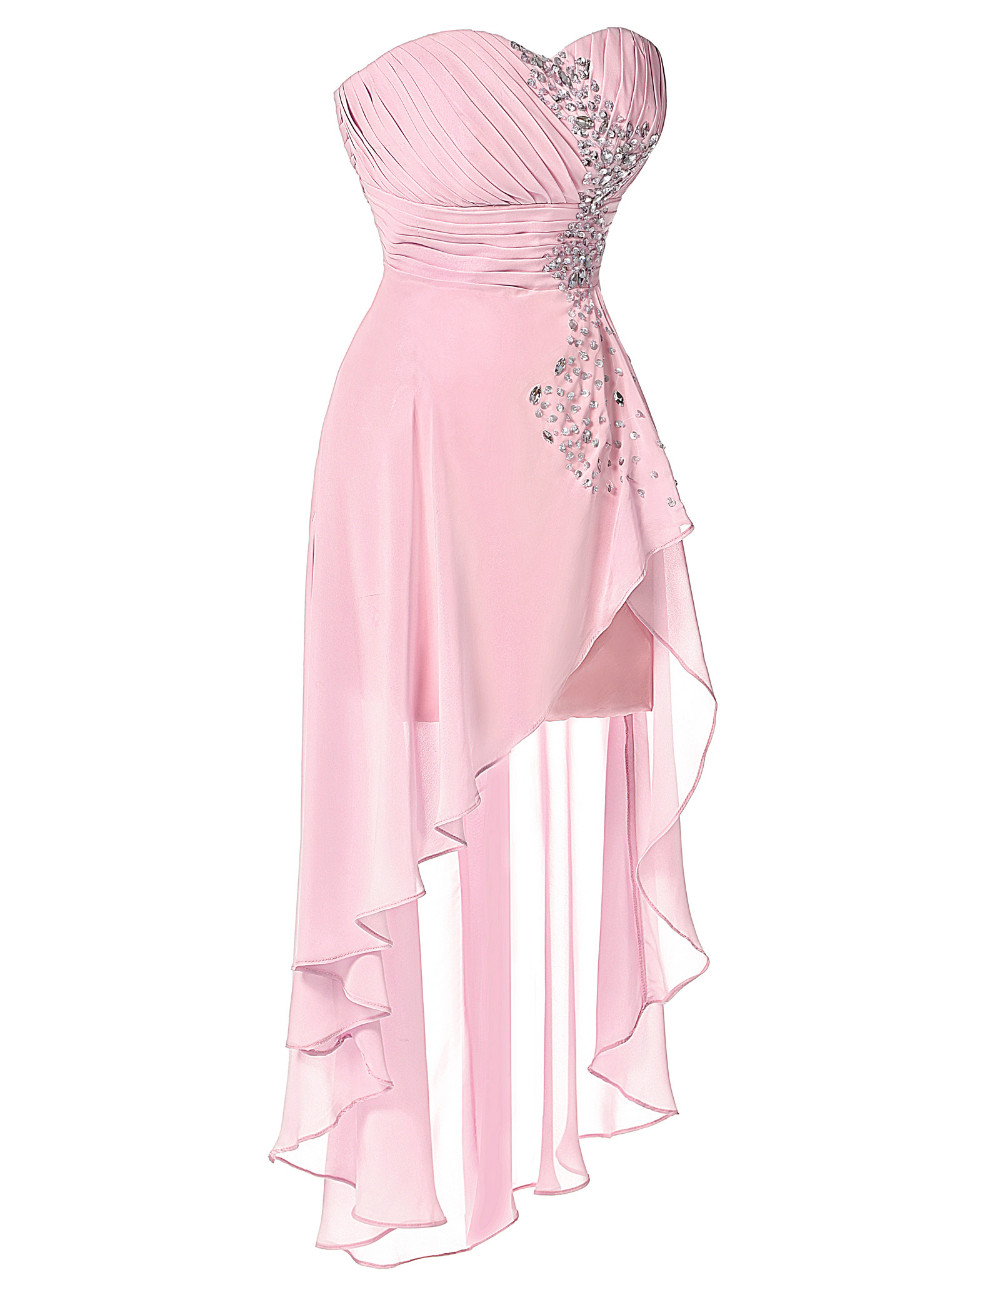 High Low Bridesmaid Dress 2017 Short Front Long Back Prom Gown Strapless Bead Sequin Pink Turquoise Bridesmaid Dress Grace Karin 9